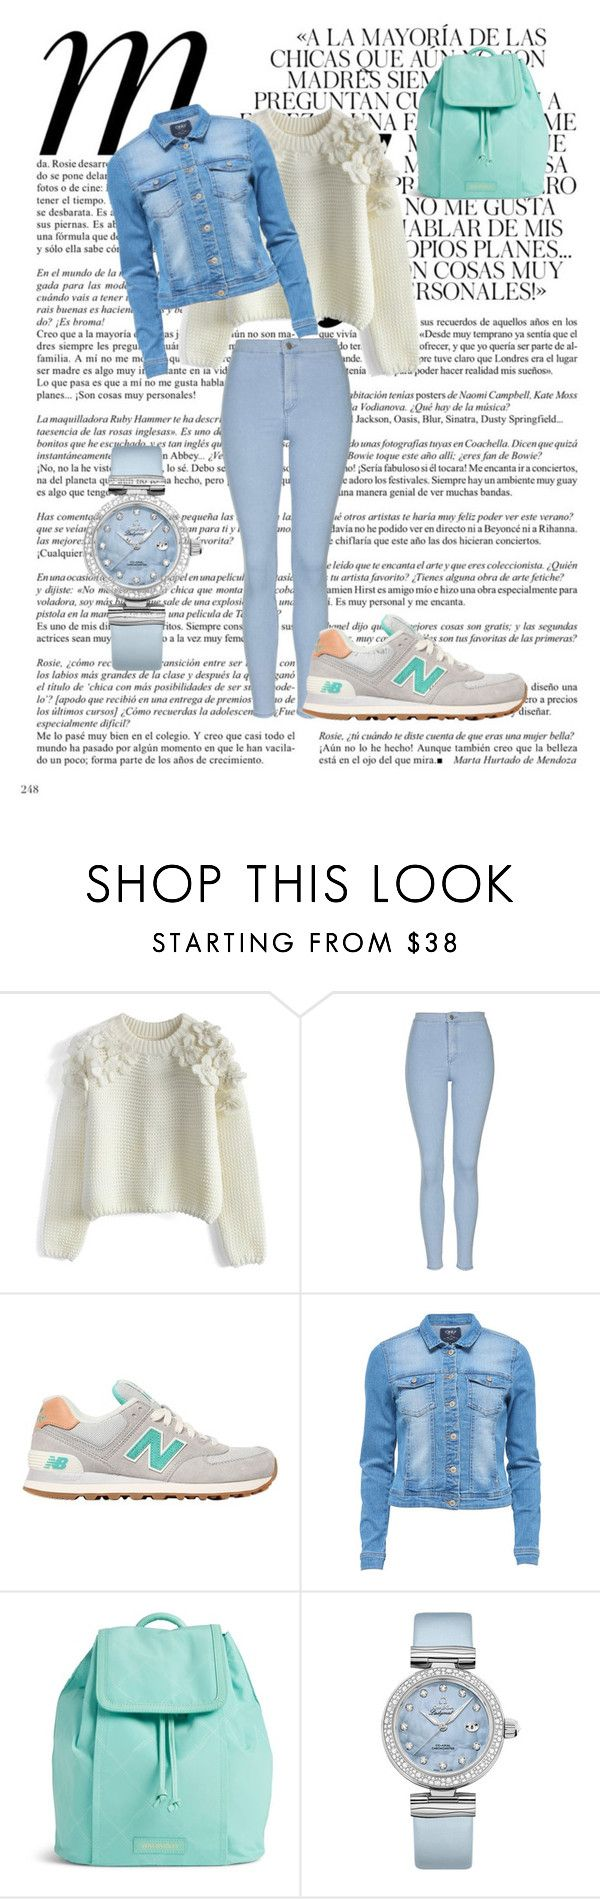 """m.s"" by carolinaborgasimoes on Polyvore featuring beauty, Whiteley, Chicwish, Topshop, New Balance, Vera Bradley and OMEGA"